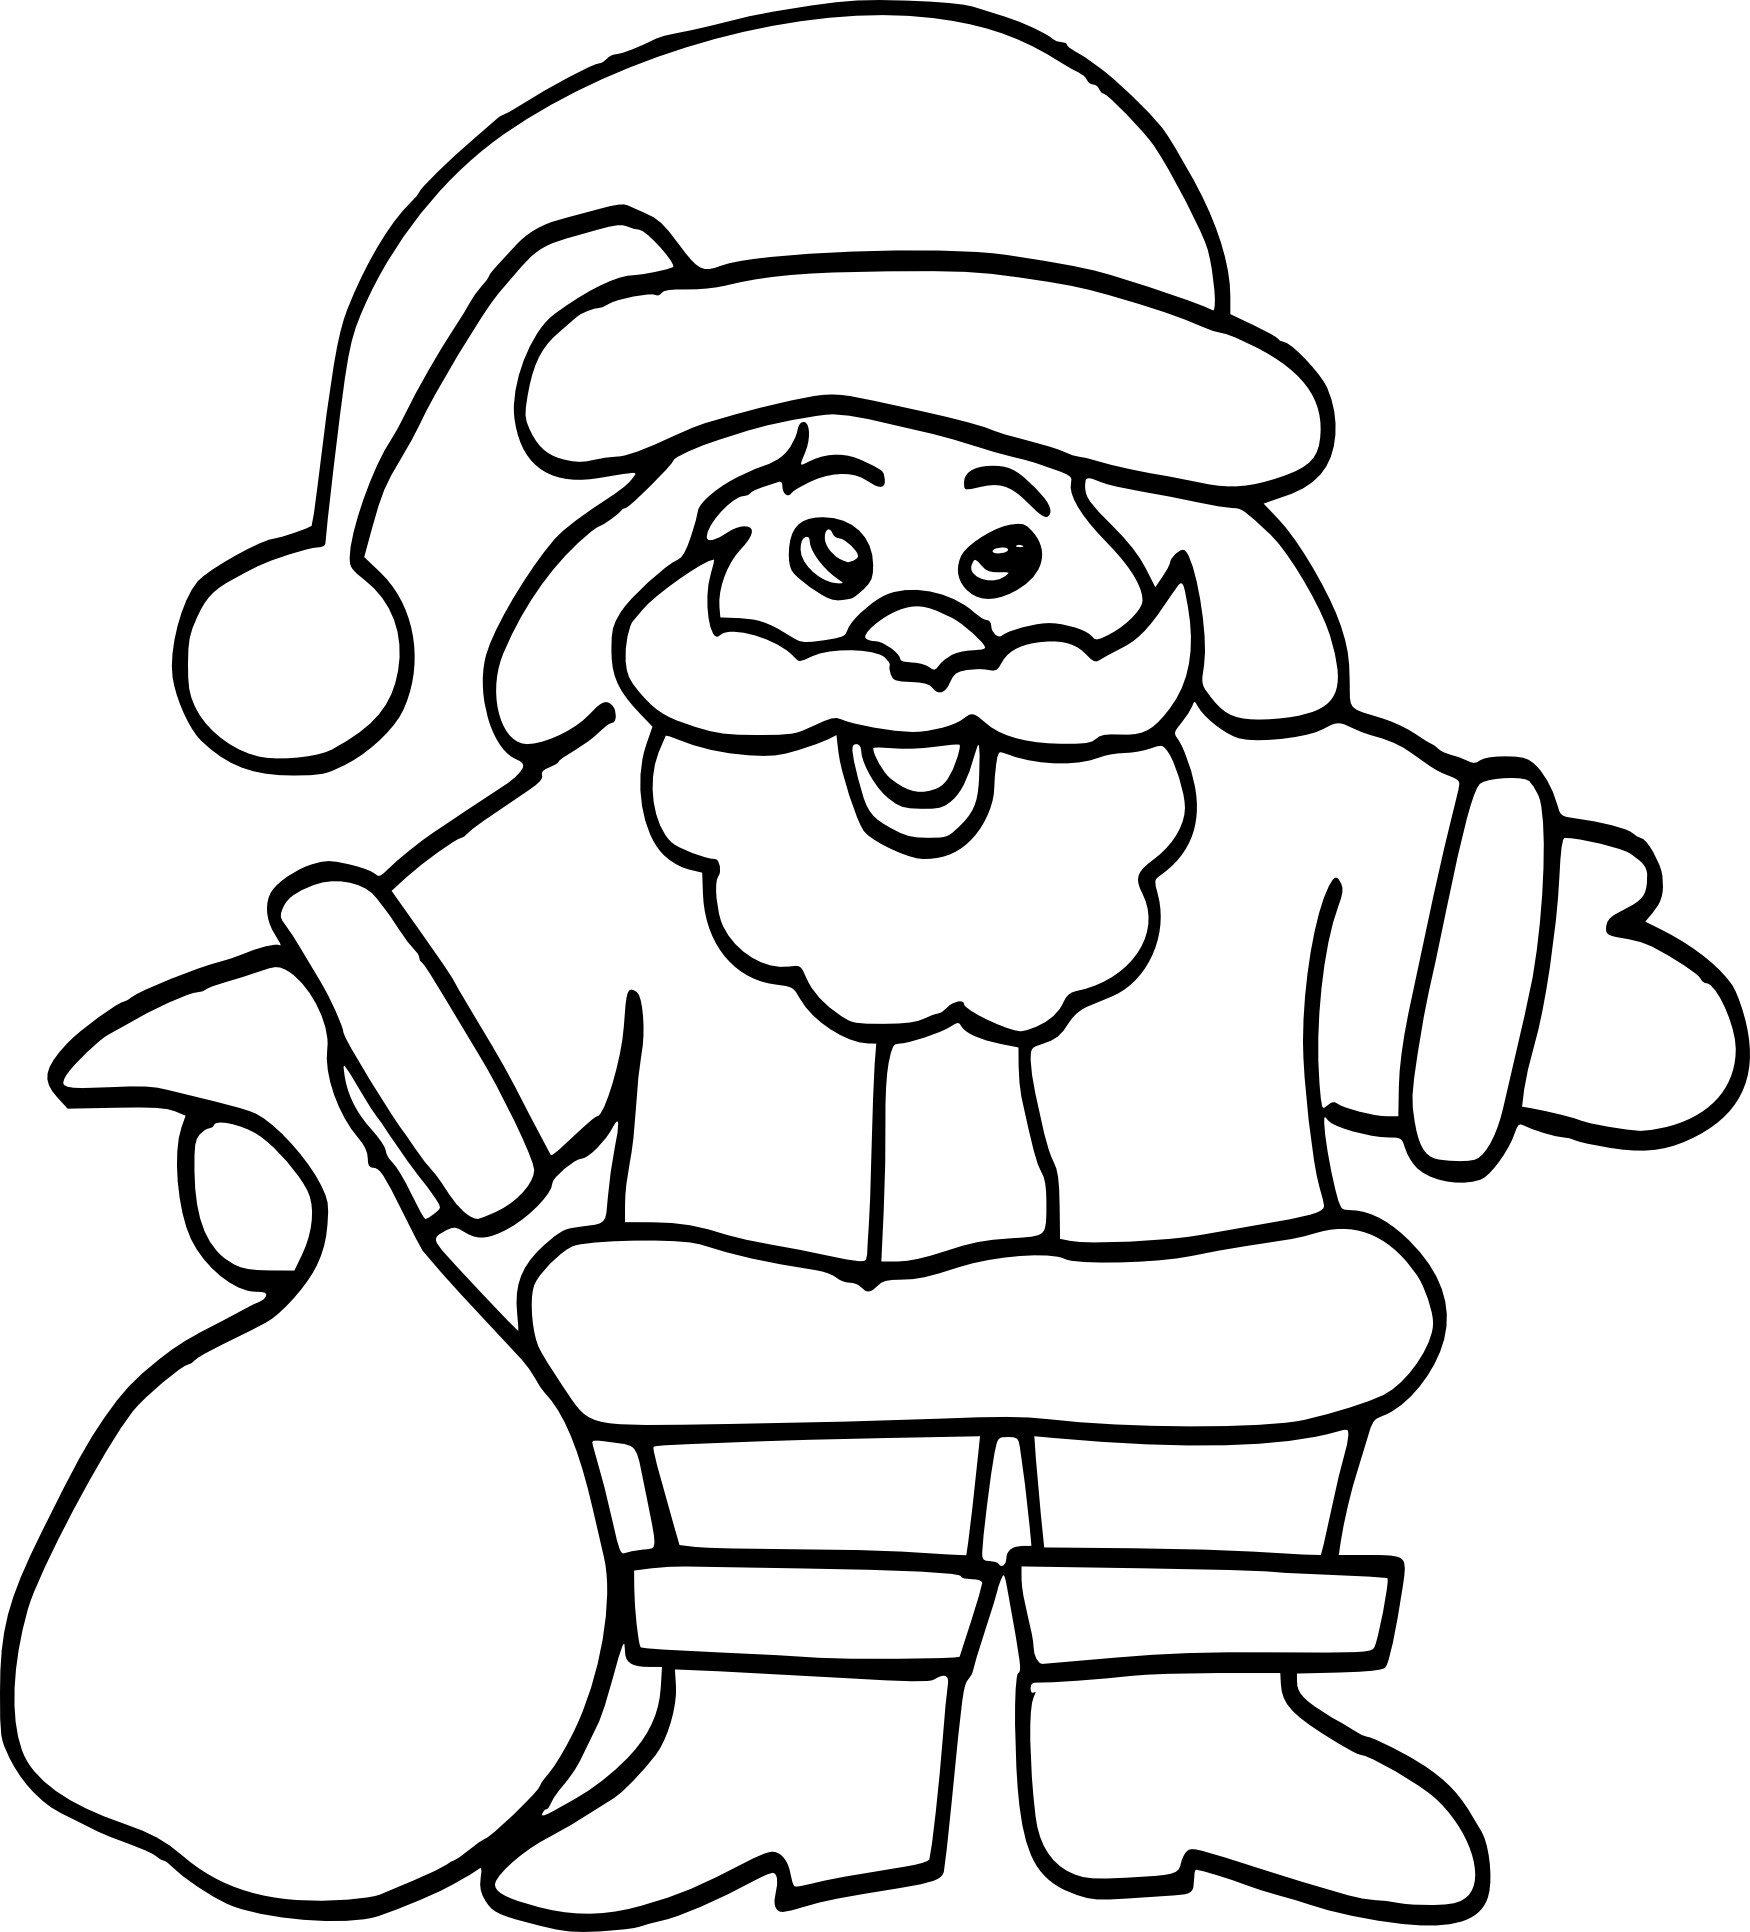 Coloriage p re no l facile imprimer - Dessin sapin de noel facile ...